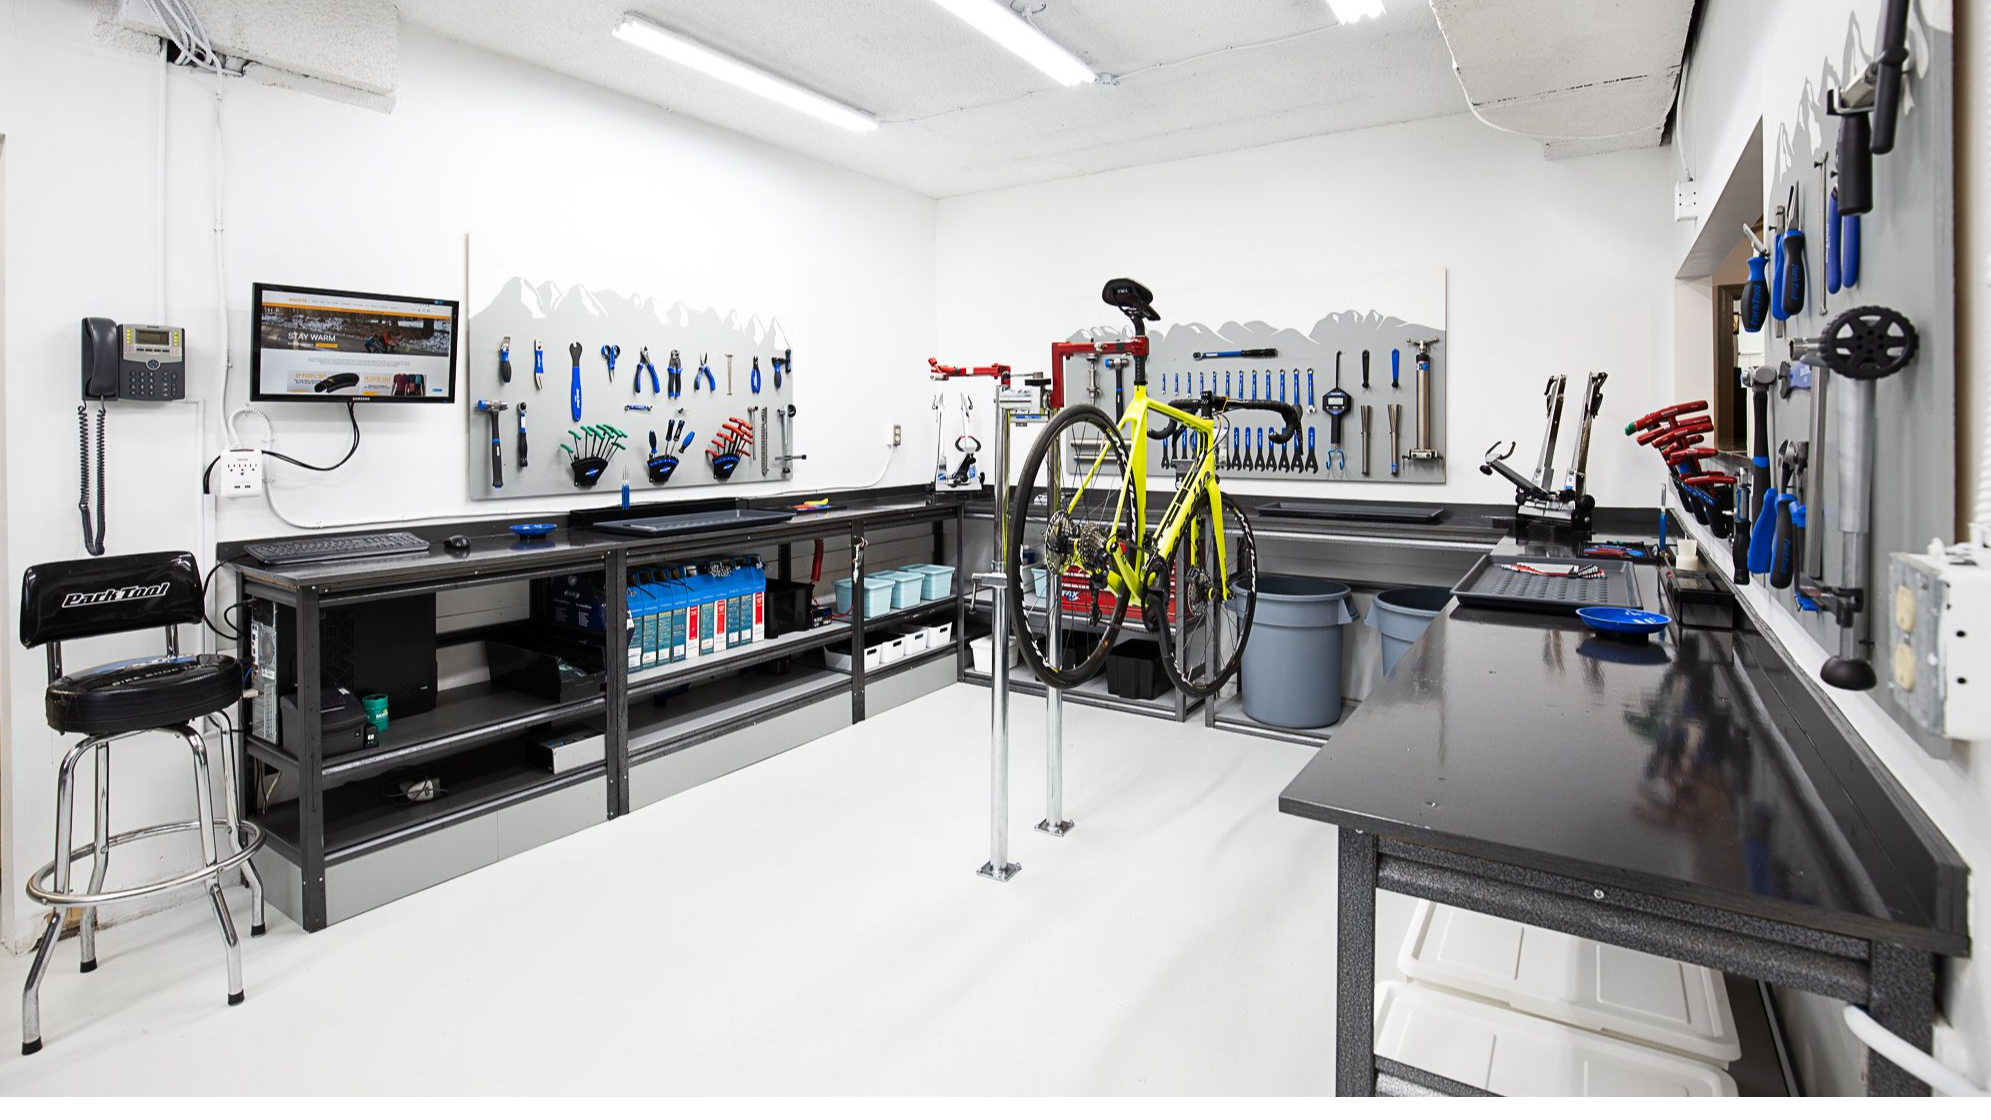 Broadway Bicycle Service Centre - Road Bike - BICICLETTA